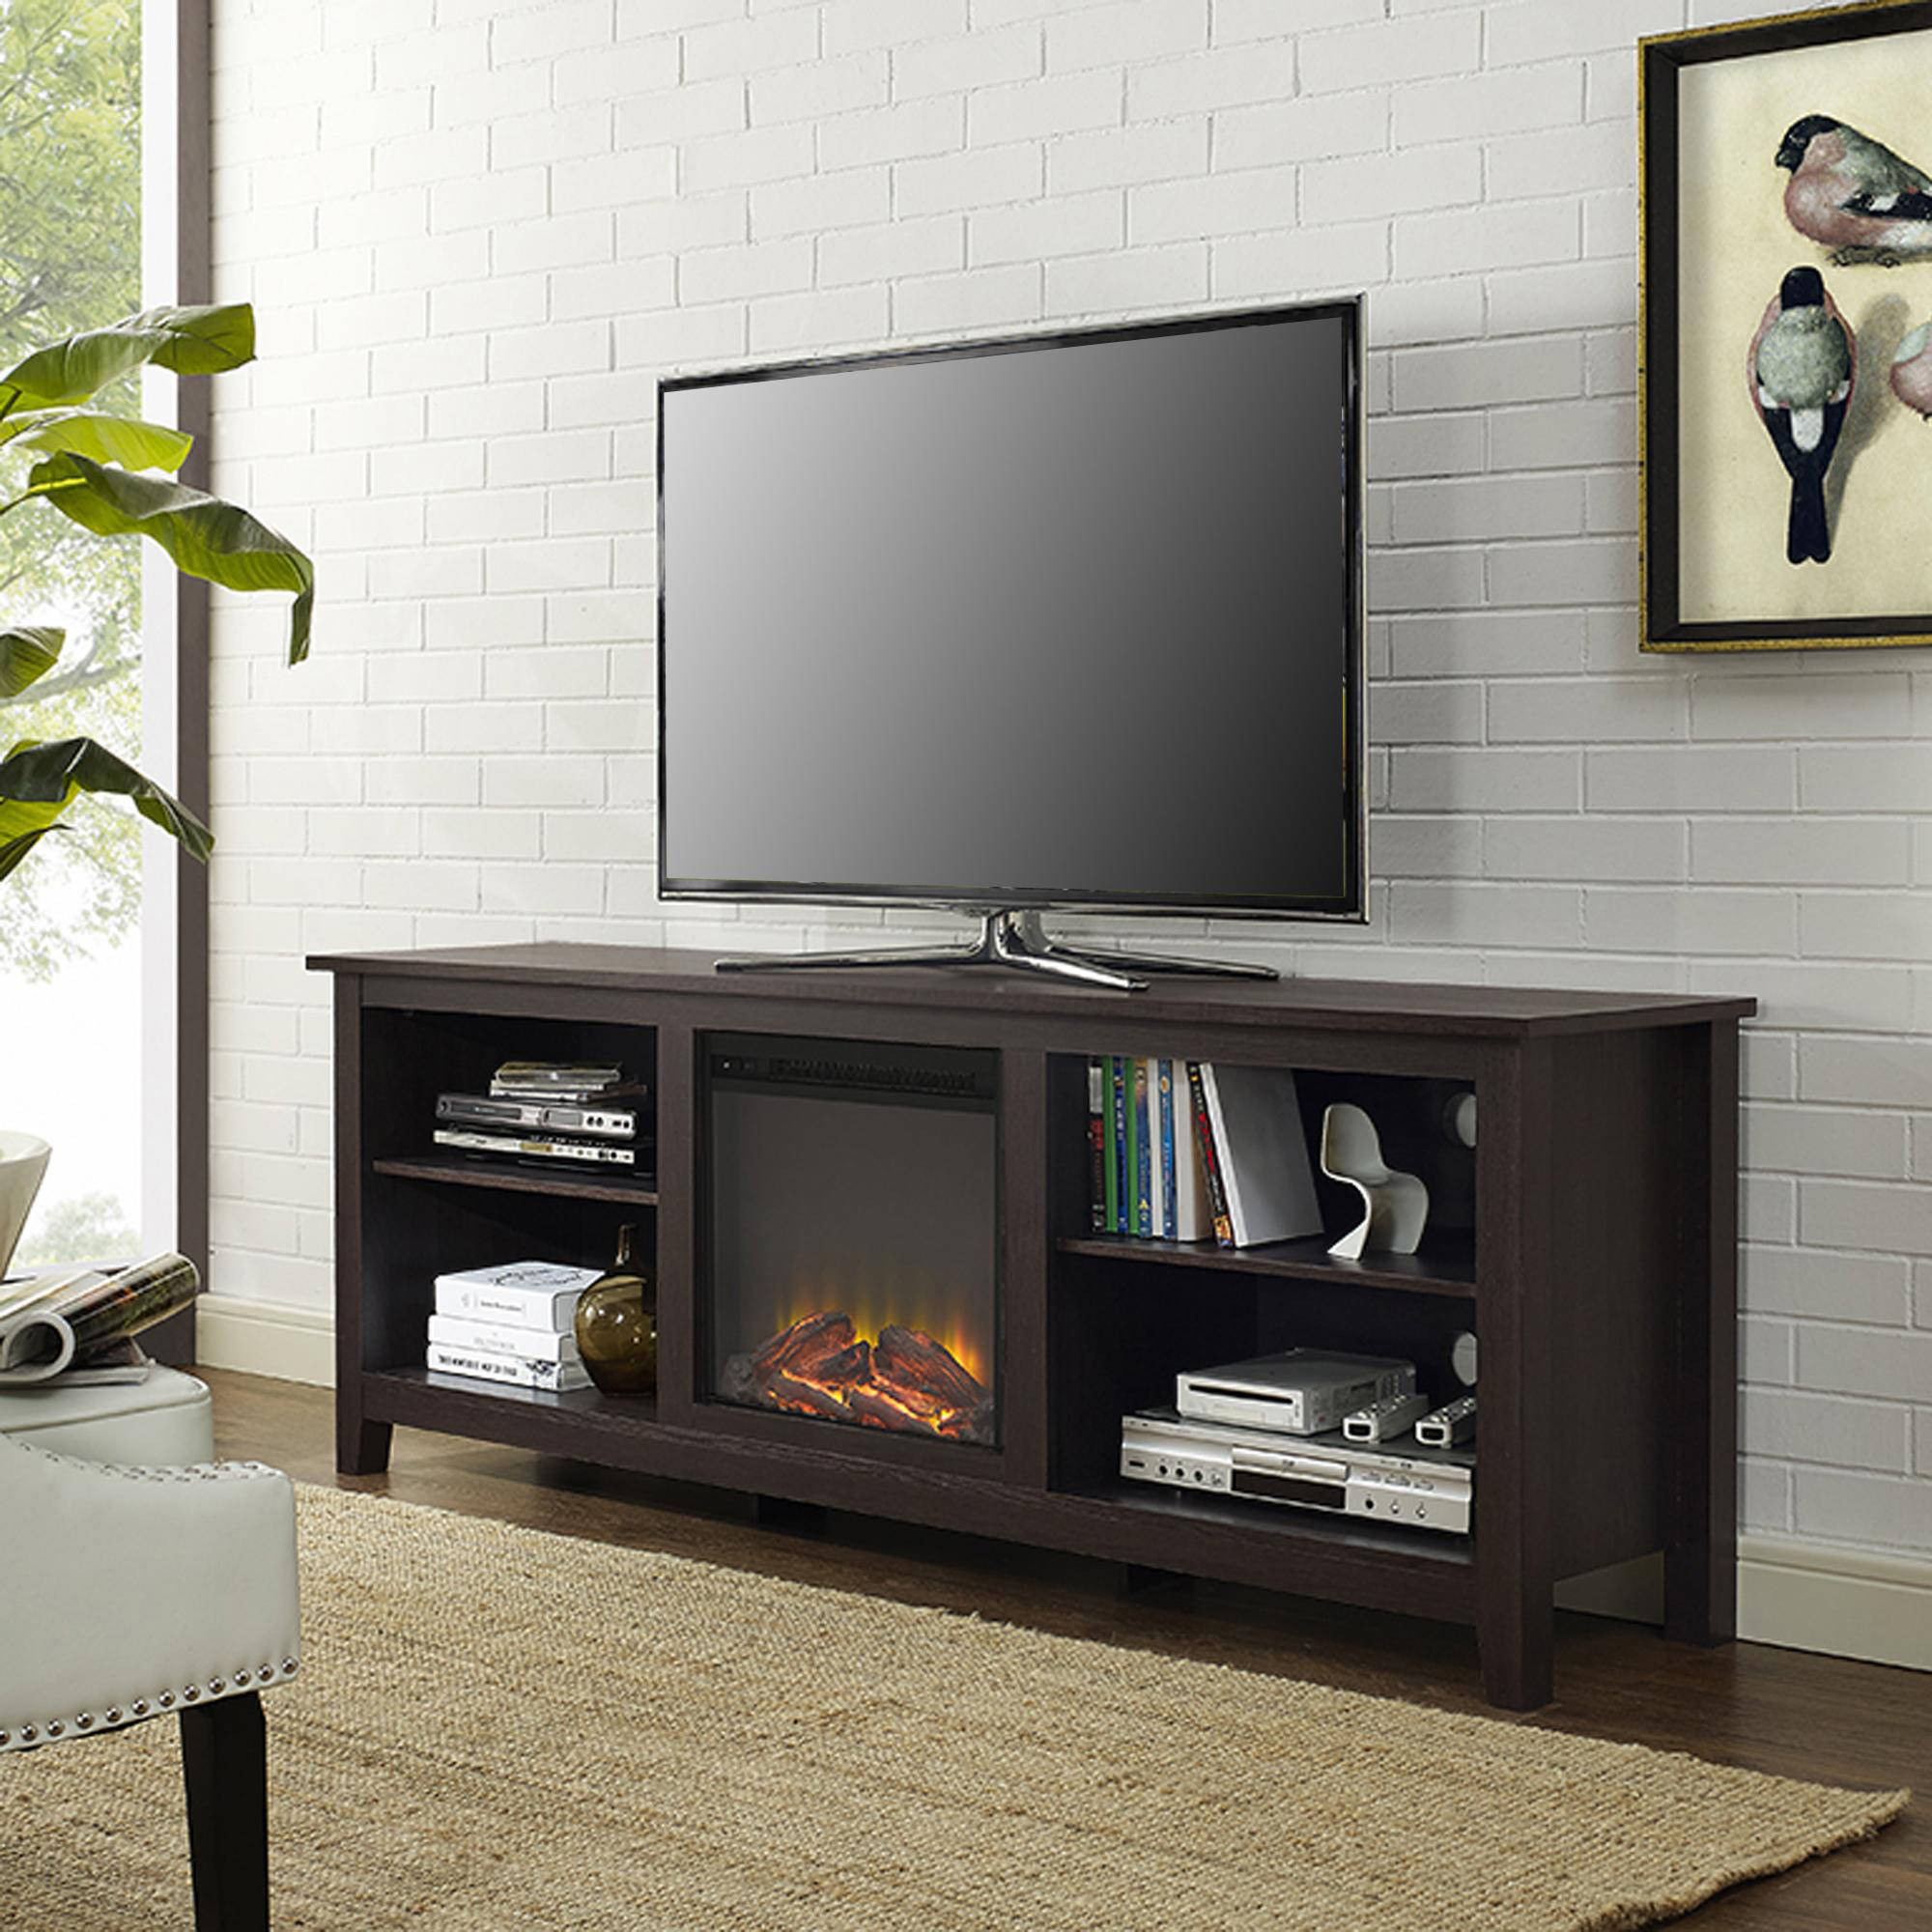 70 Inch Tv Stand For Flat Screens With Fireplace Tv Rack Furniture